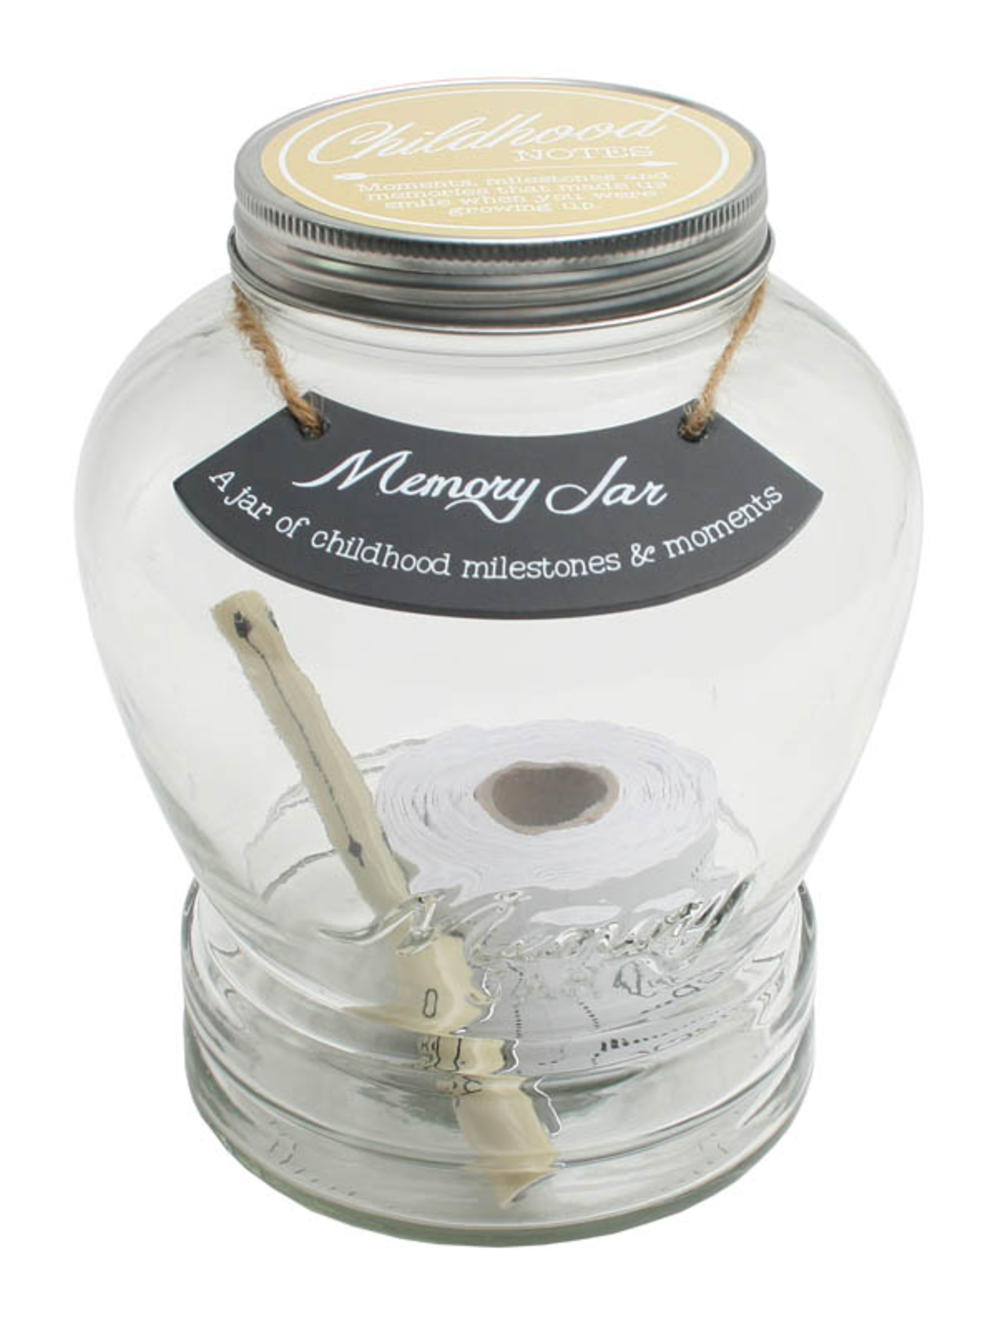 Splosh Childhood Notes Memory Jar Gift Idea